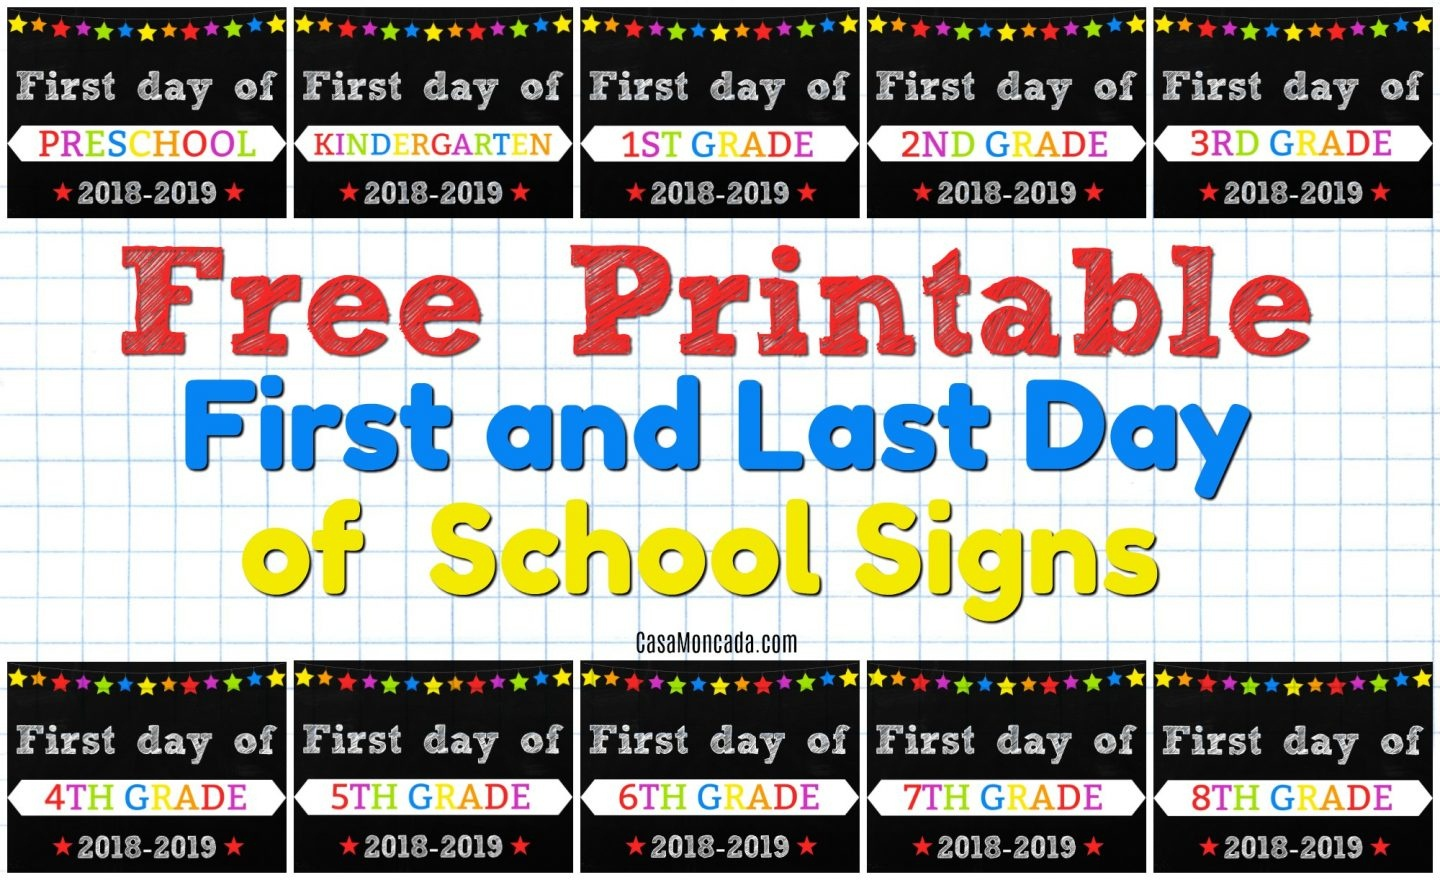 Free Printable First And Last Day Of School Signs - Casa Moncada - Free Printable Last Day Of School Signs 2017 2018